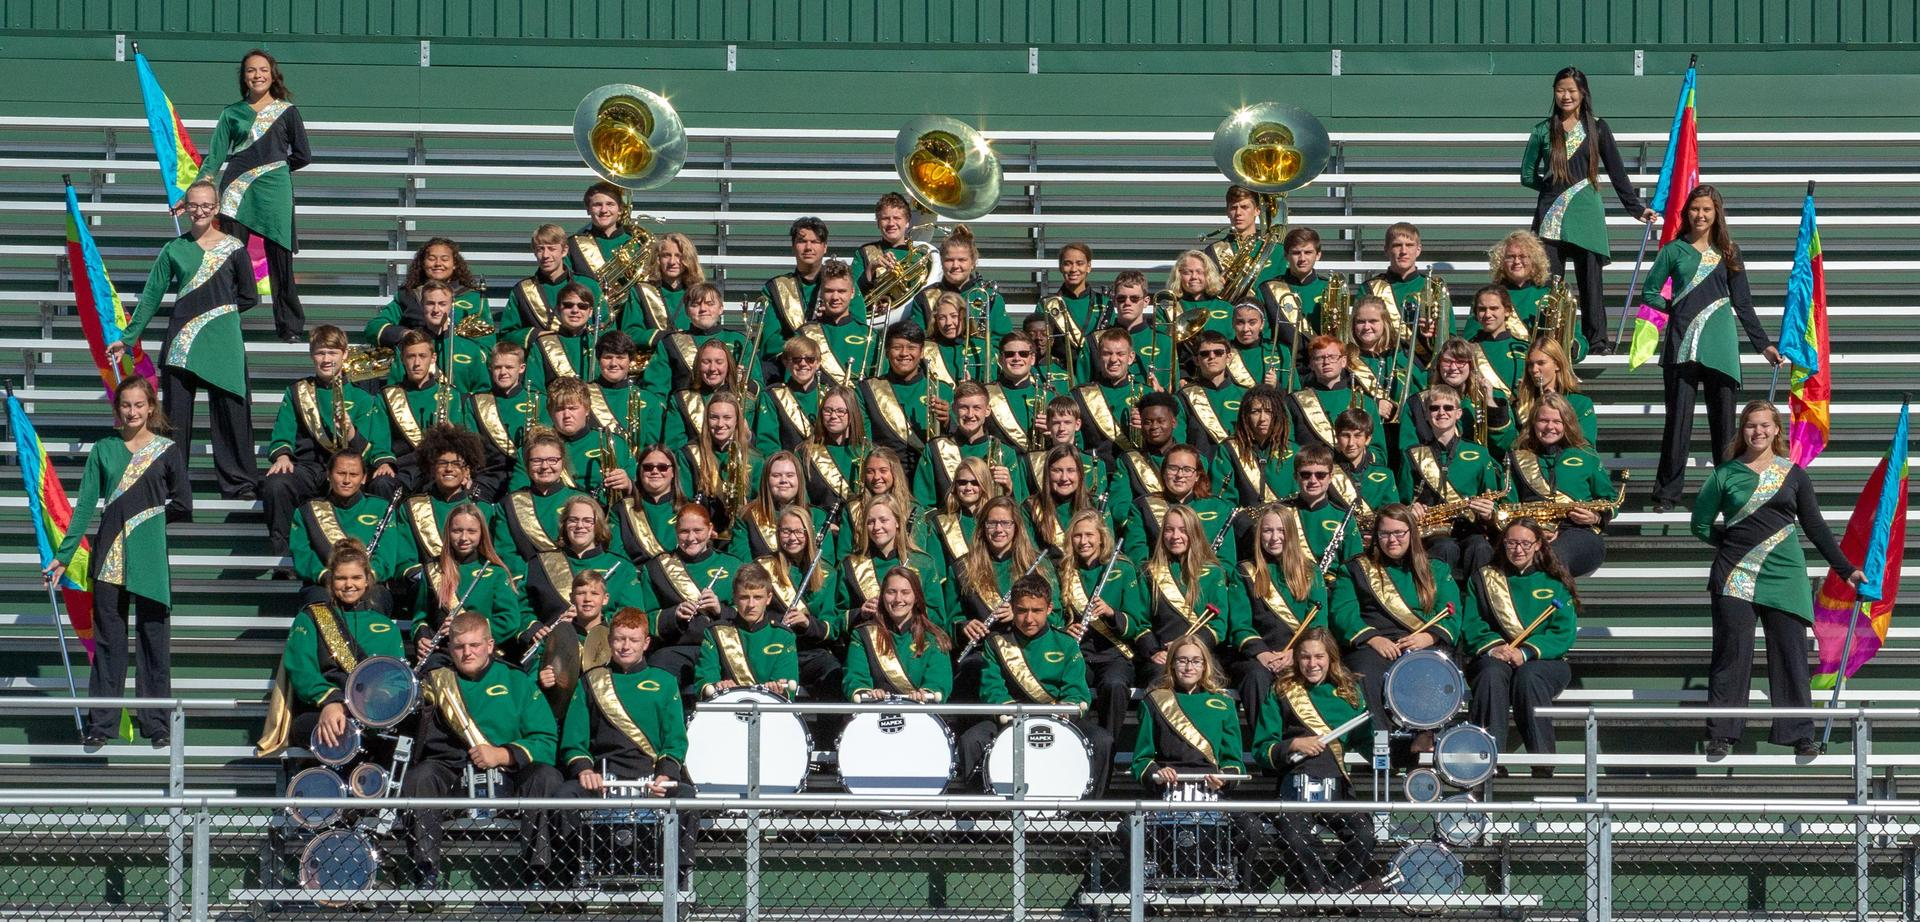 Coloma Marching Band 2018-19